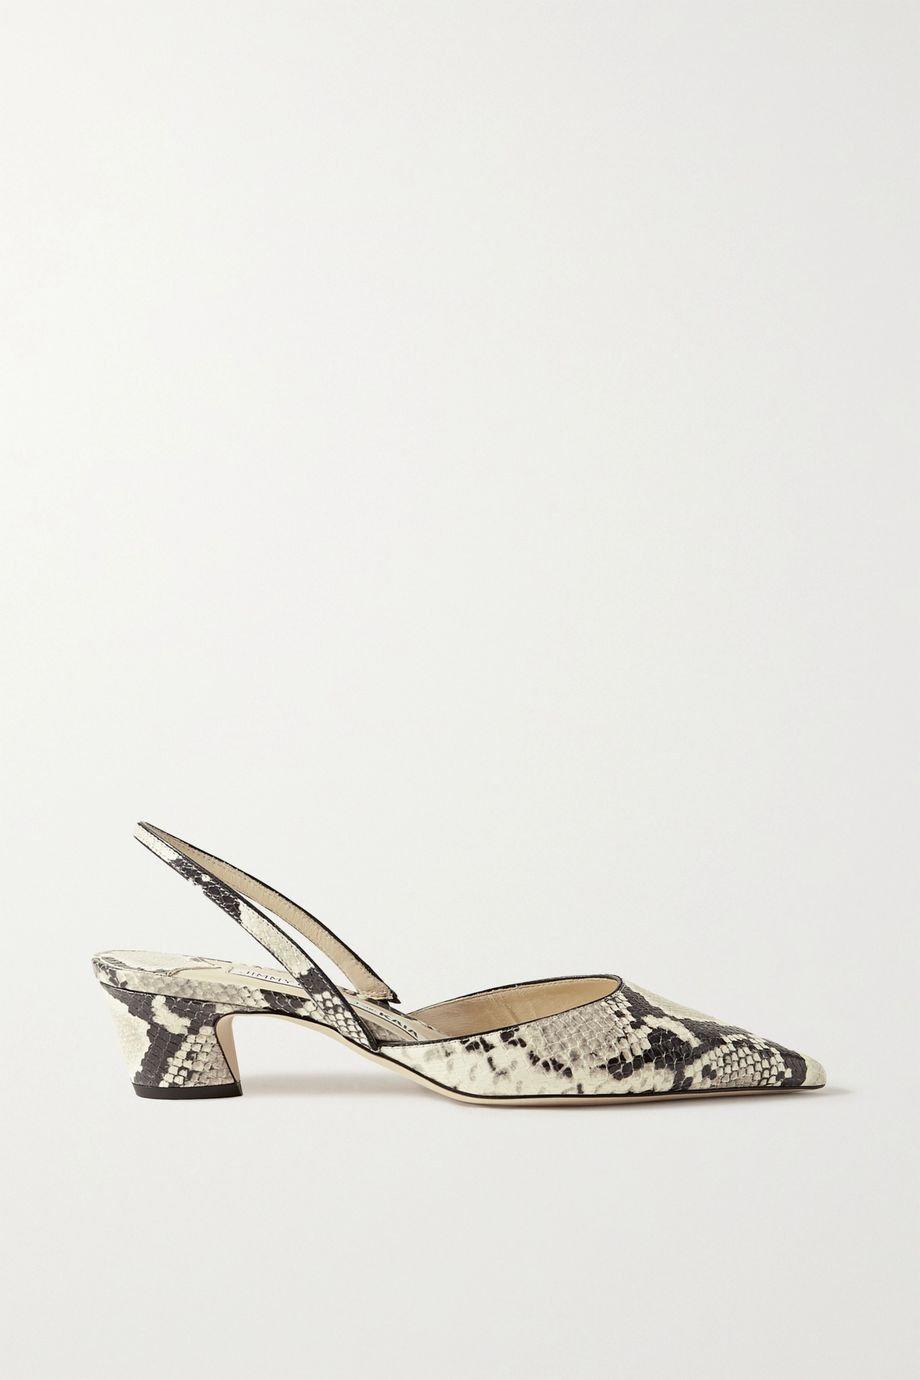 Jimmy Choo + Kaia Gerber 40 snake-effect leather slingback pumps